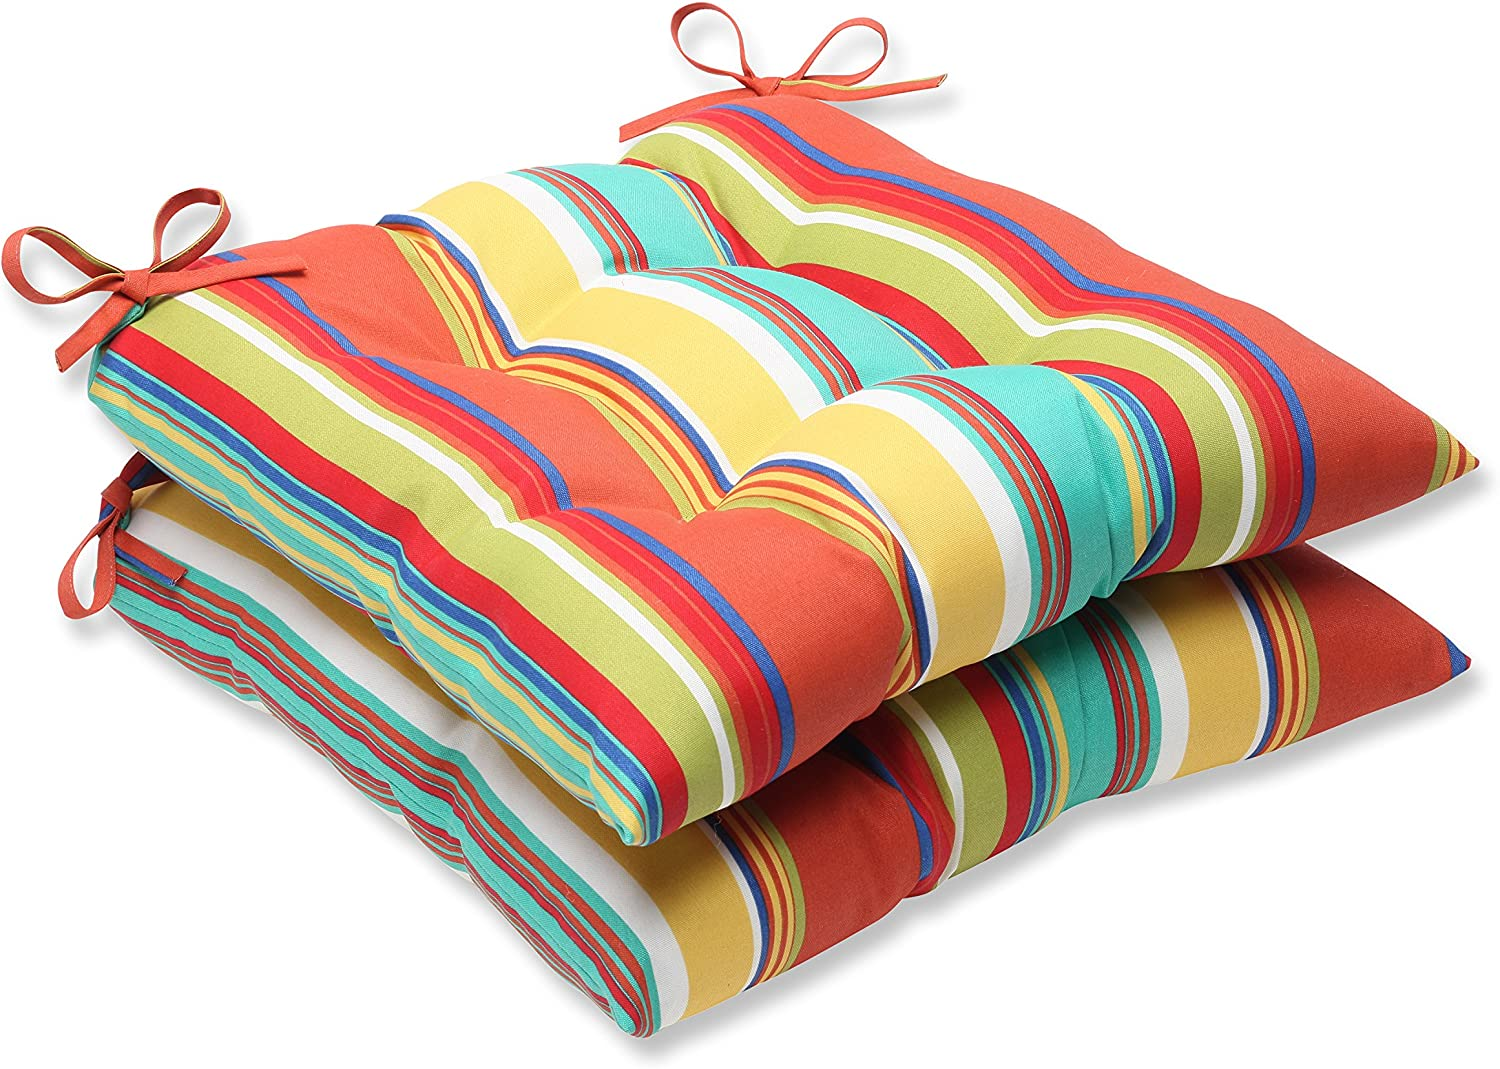 Pillow Perfect Outdoor Westport Spring Wrought Iron Seat Cushion, Multicolored, Set of 2